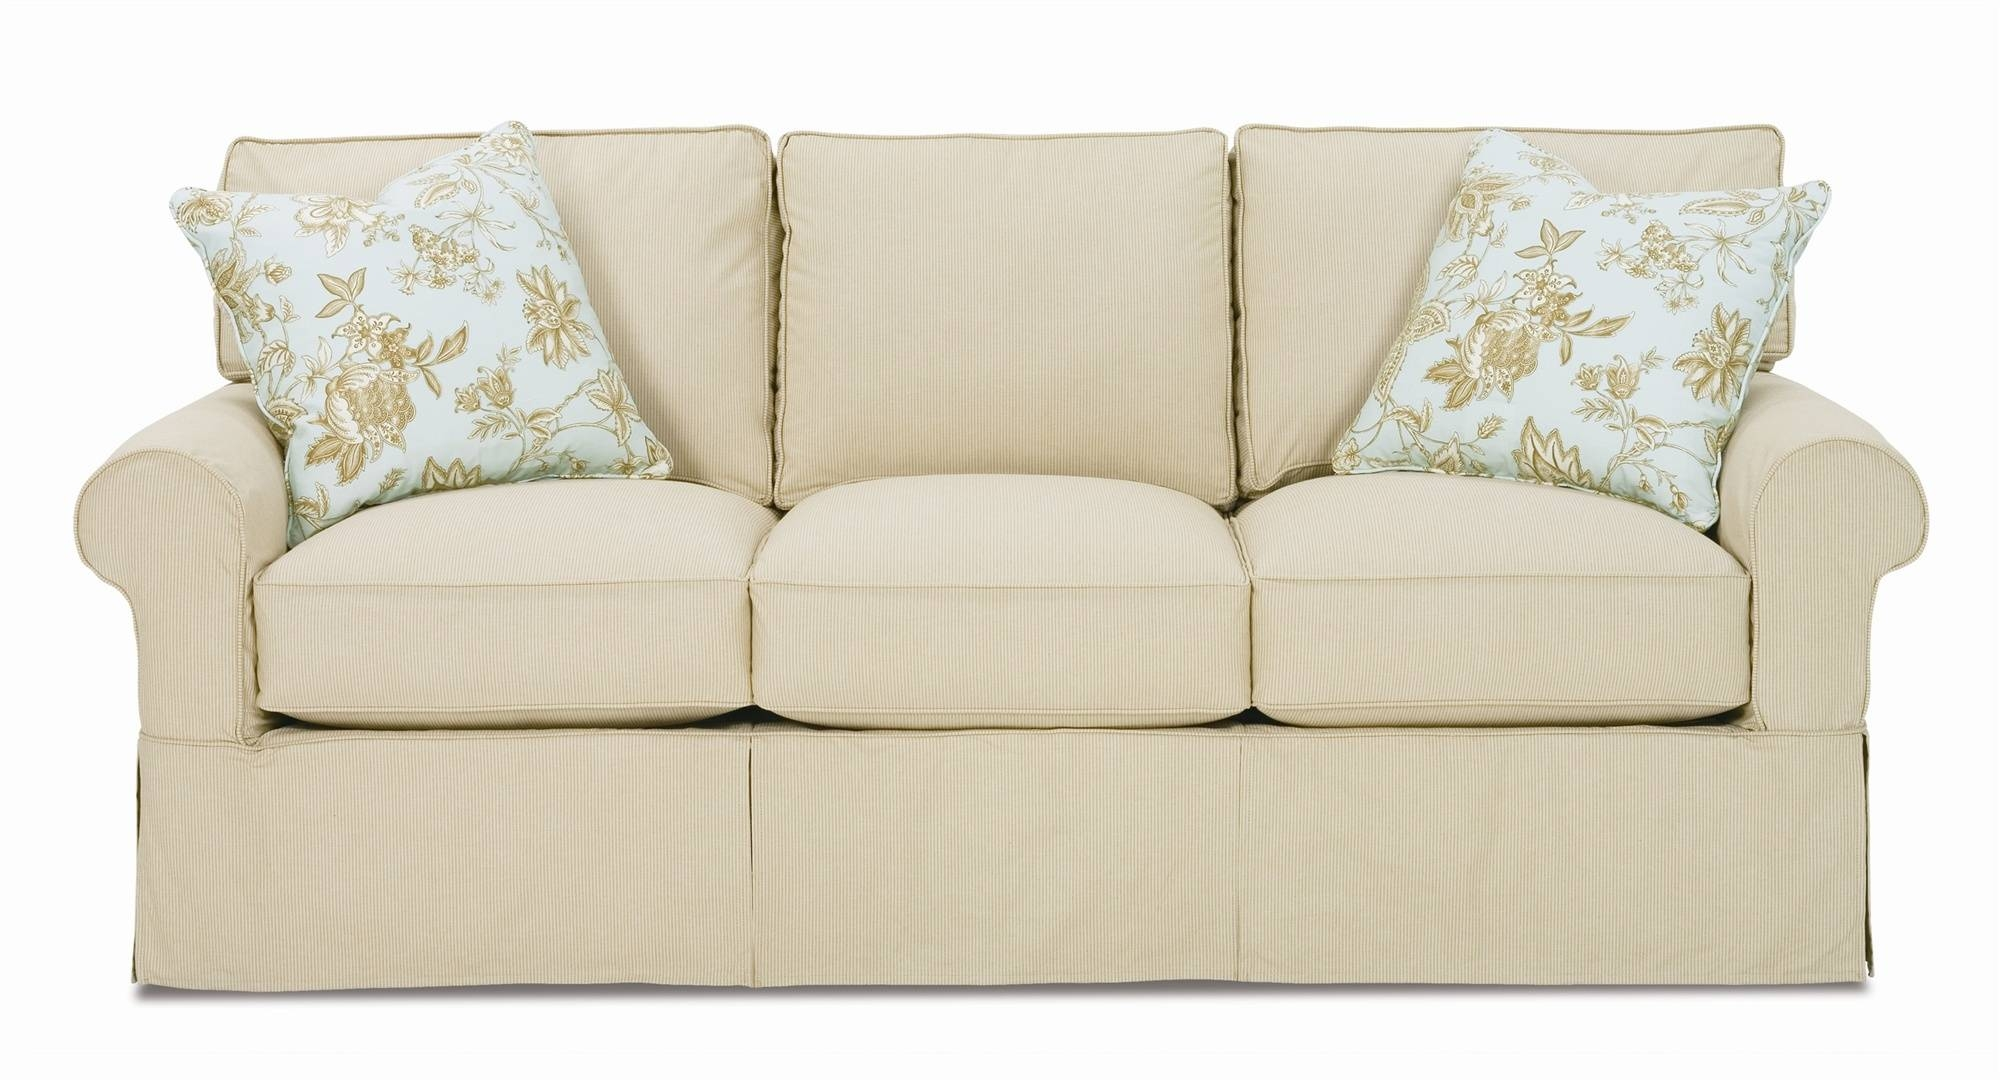 Decor: Lovely Shabby Chic Slipcovers For Enchanting Furniture throughout Sofa Settee Covers (Image 8 of 30)